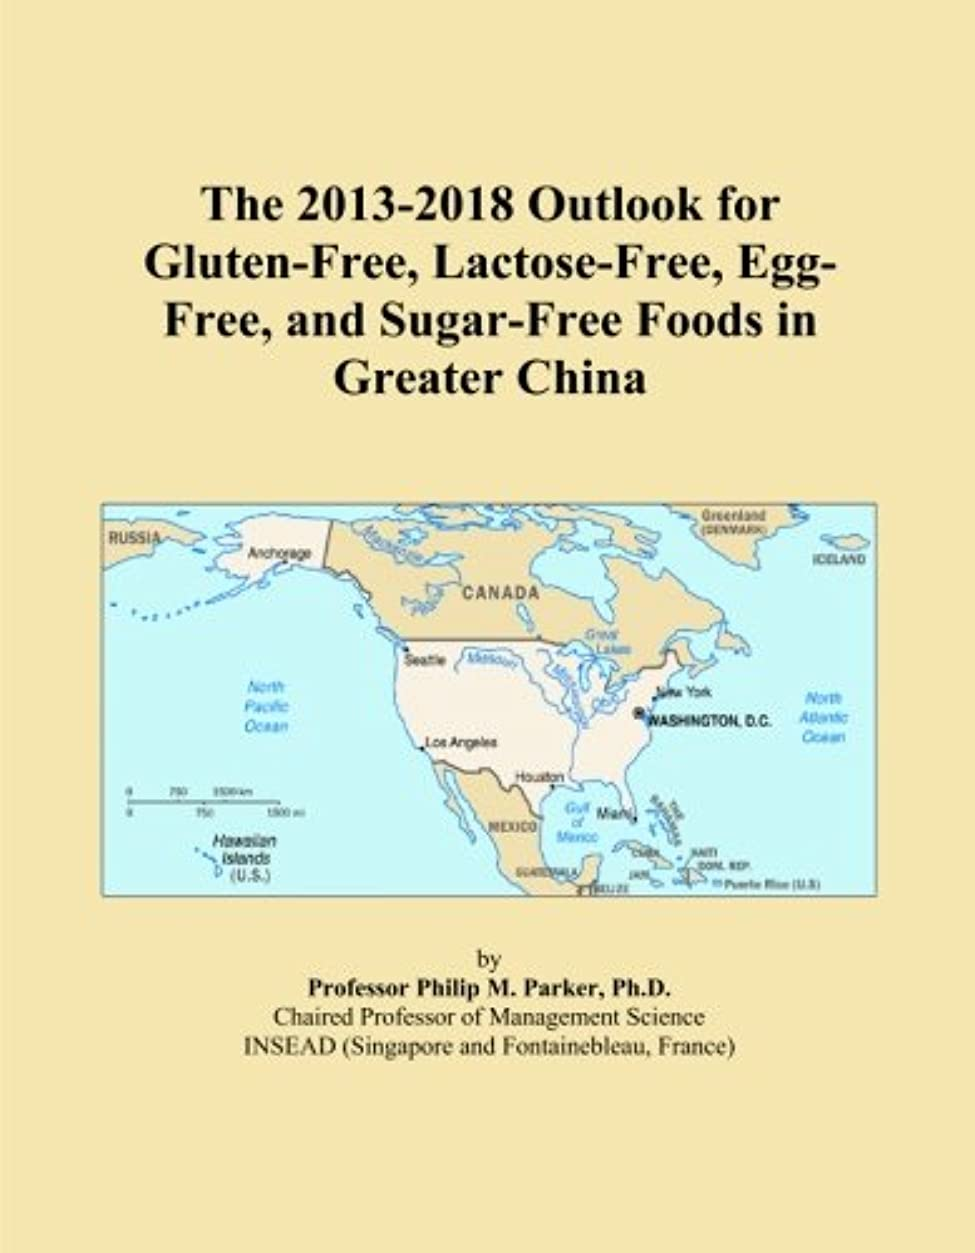 メモキネマティクスノミネートThe 2013-2018 Outlook for Gluten-Free, Lactose-Free, Egg-Free, and Sugar-Free Foods in Greater China